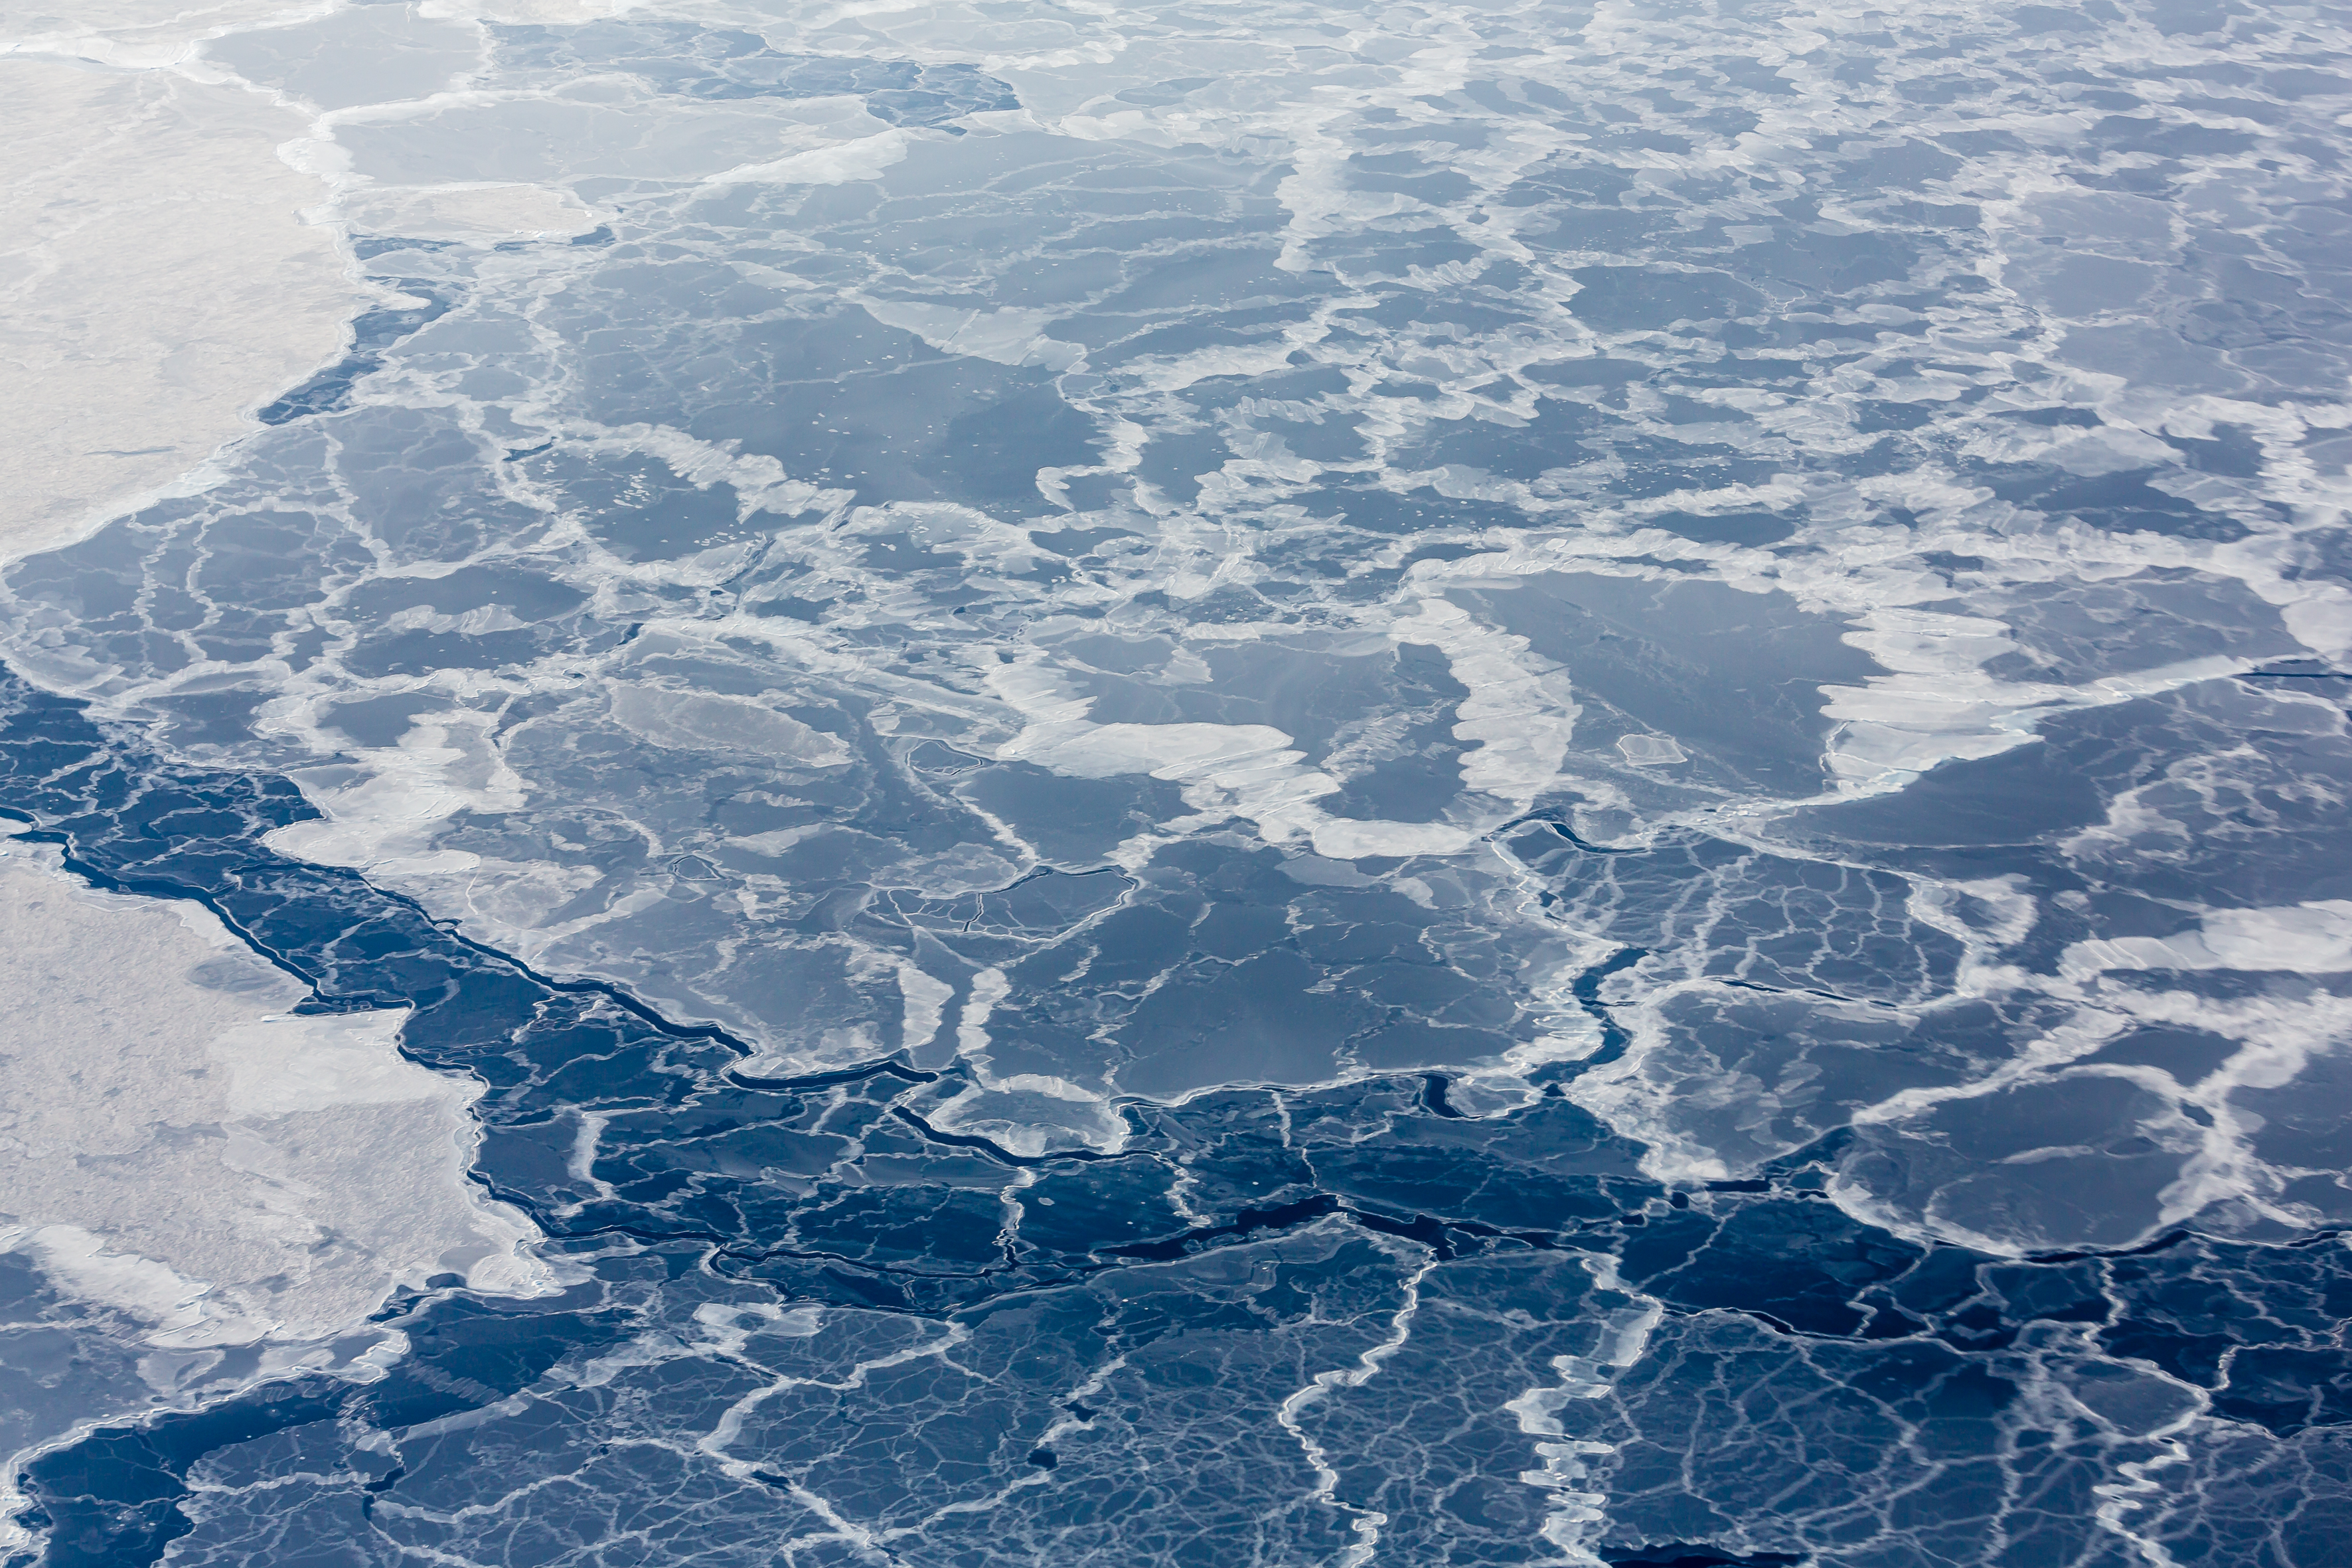 Space in Images - 2014 - 07 - Thin sea ice